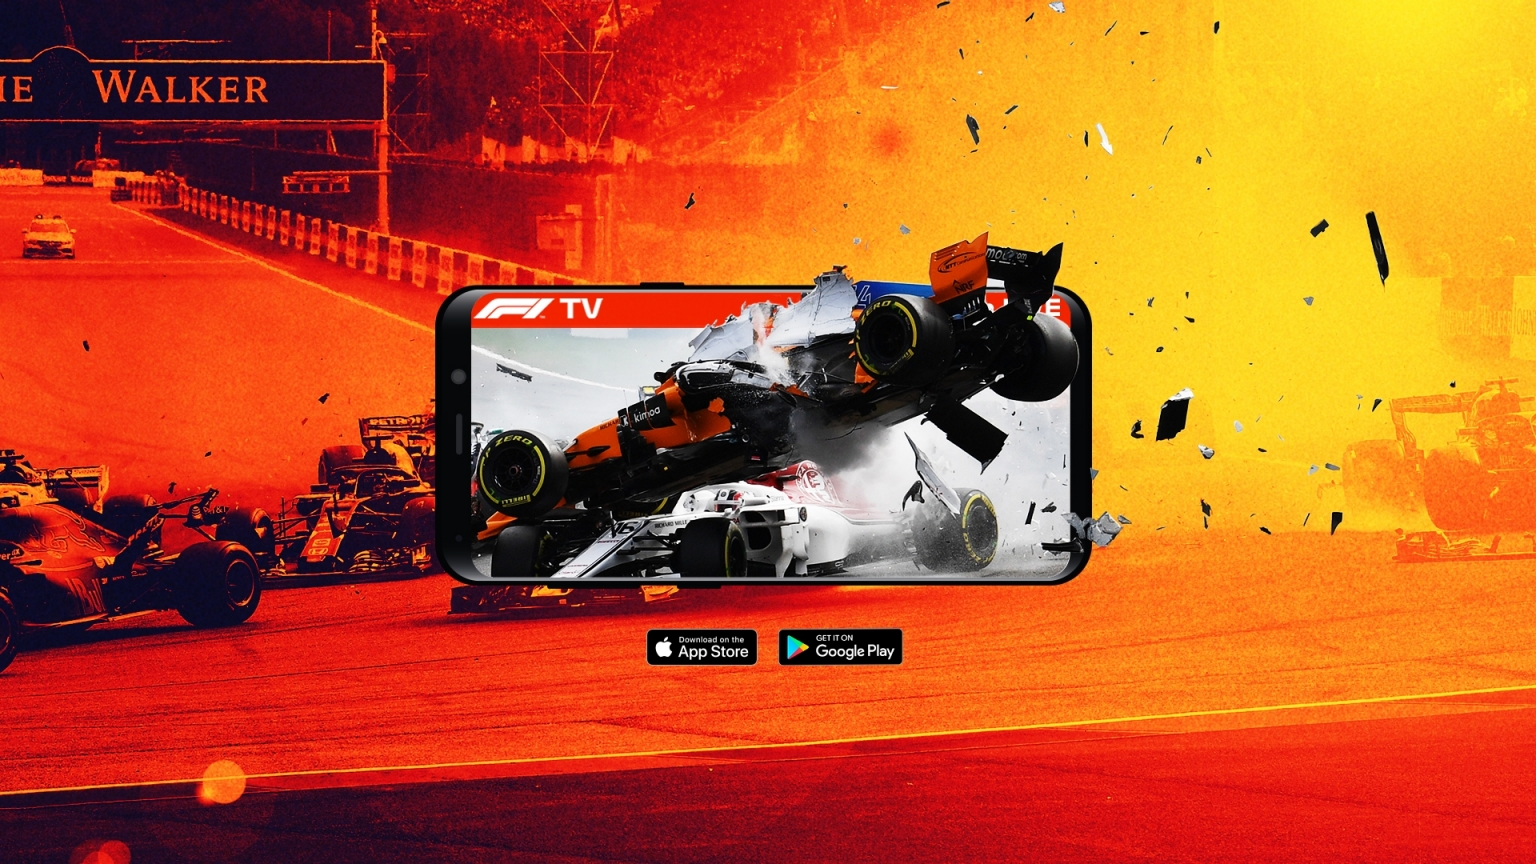 F1 TV app is now live on iOS and Android